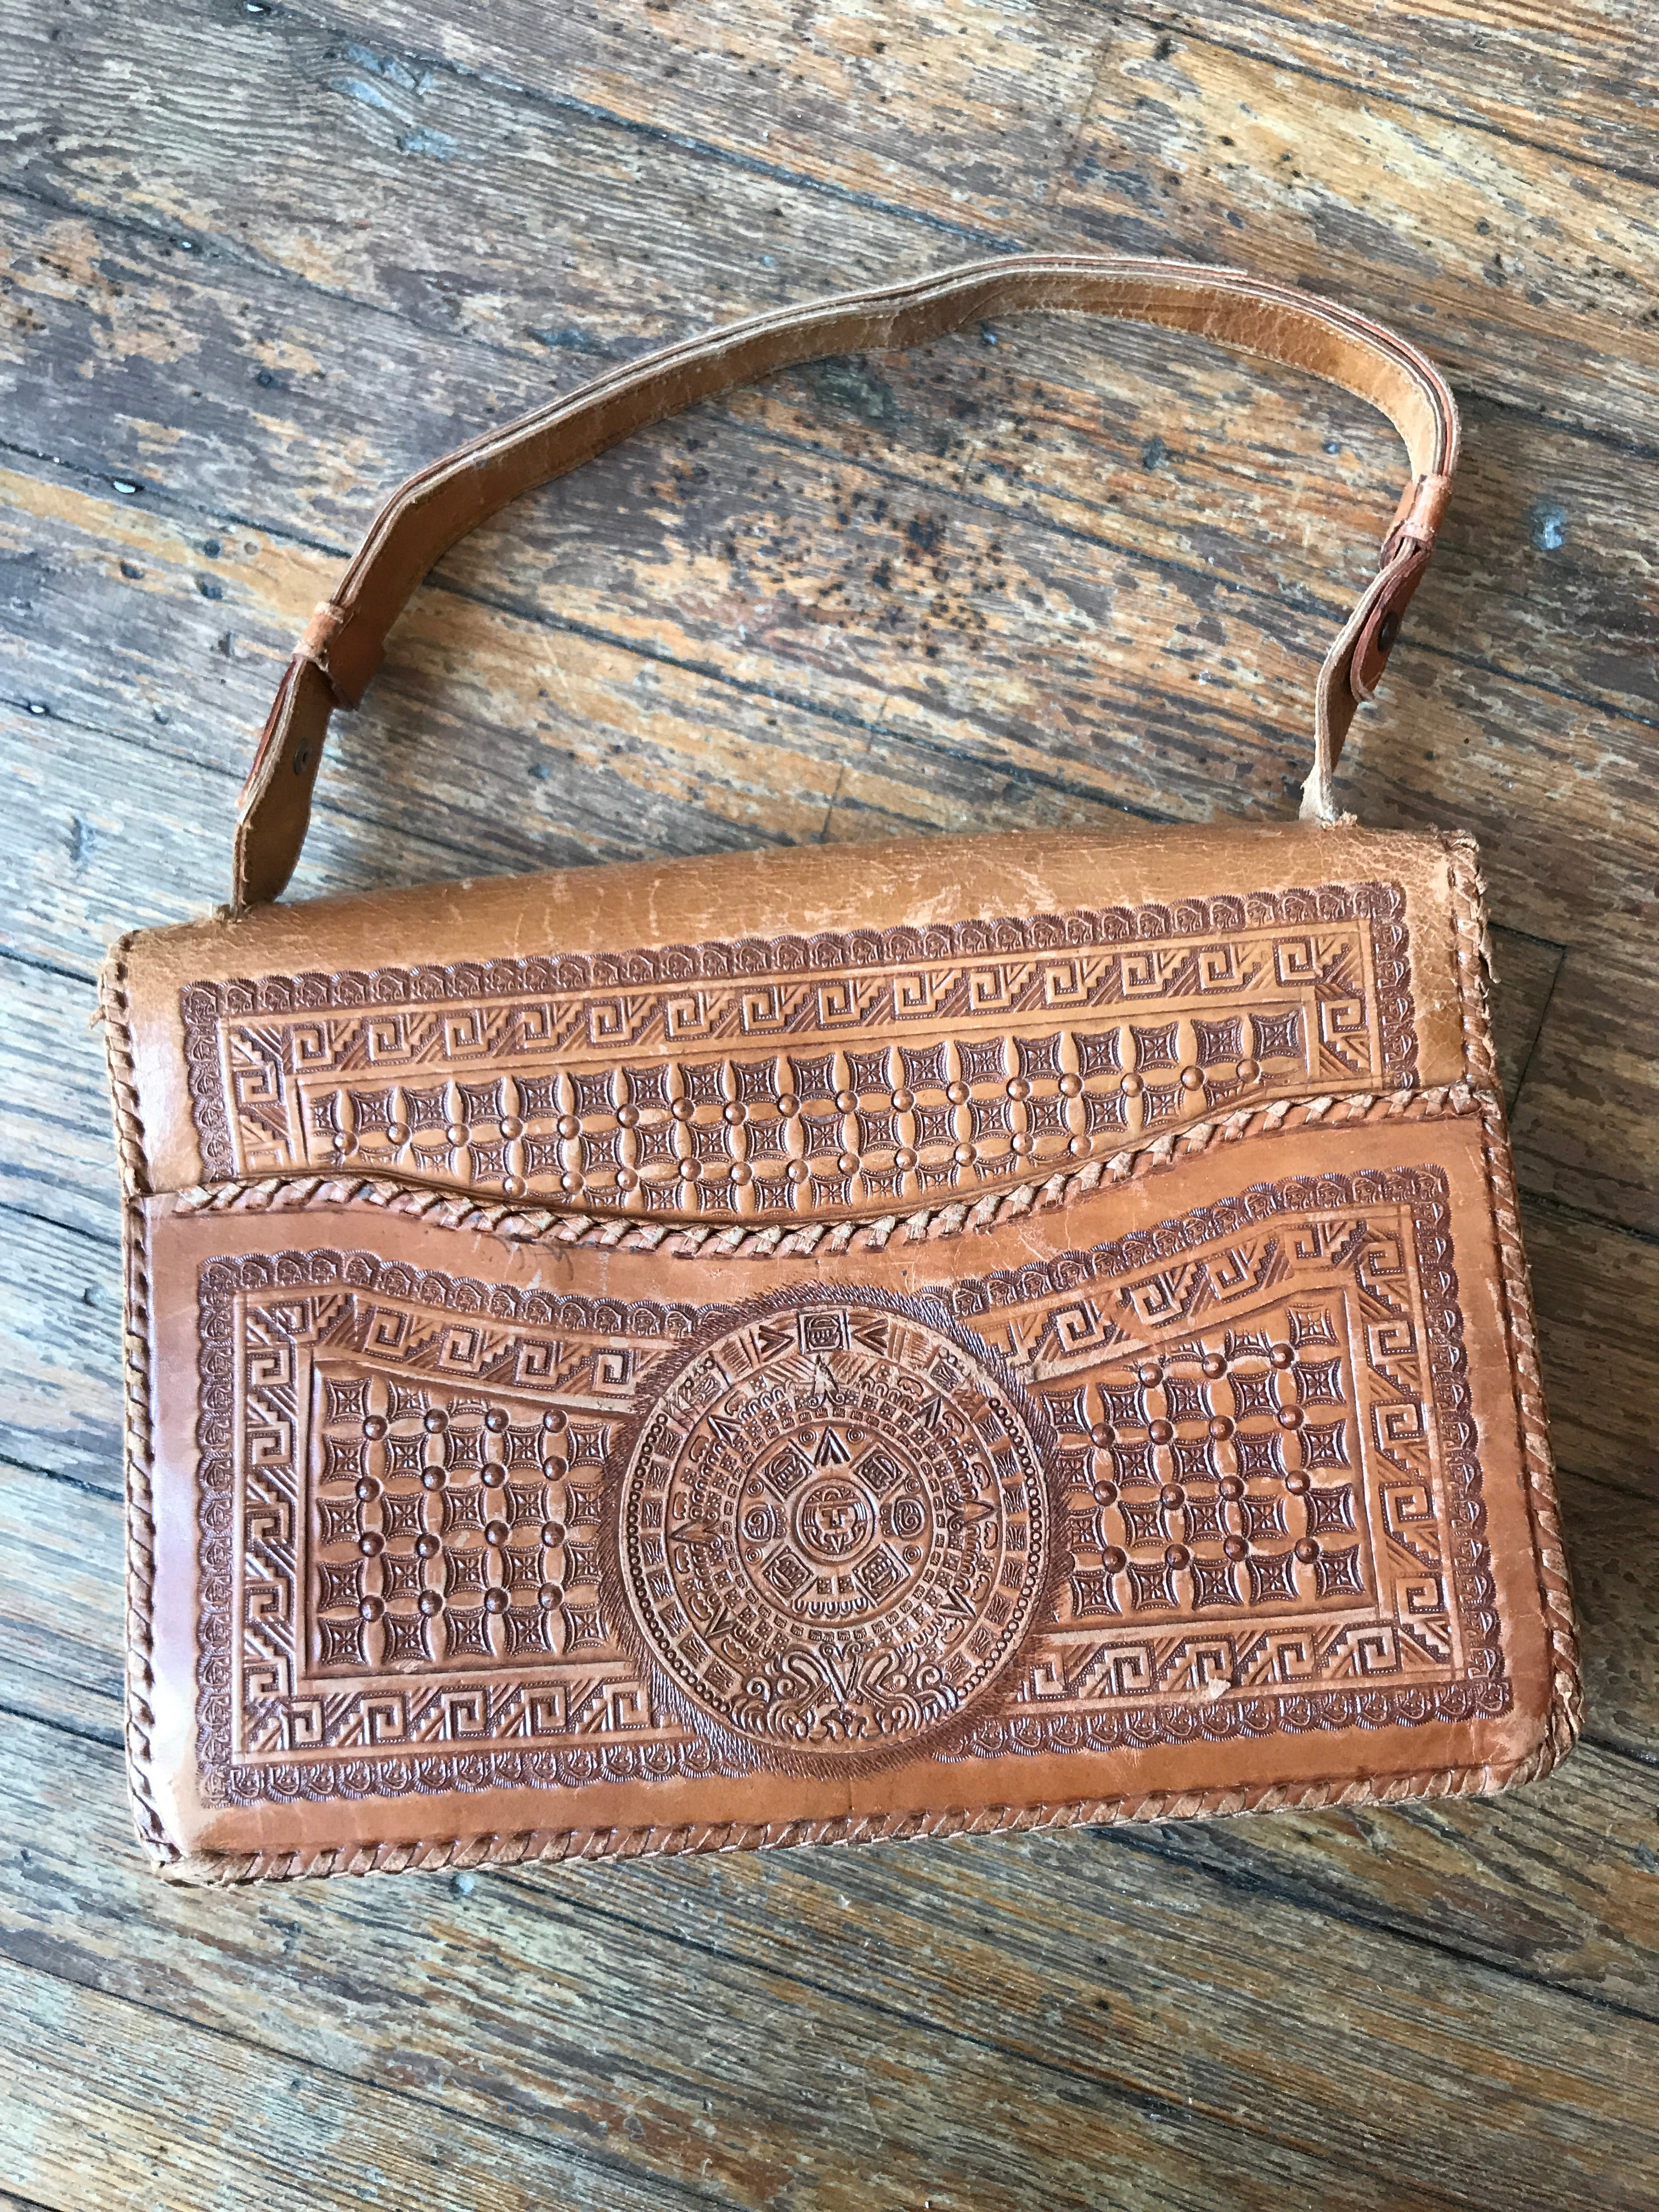 Insanely Detailed Leather Mexican Bag